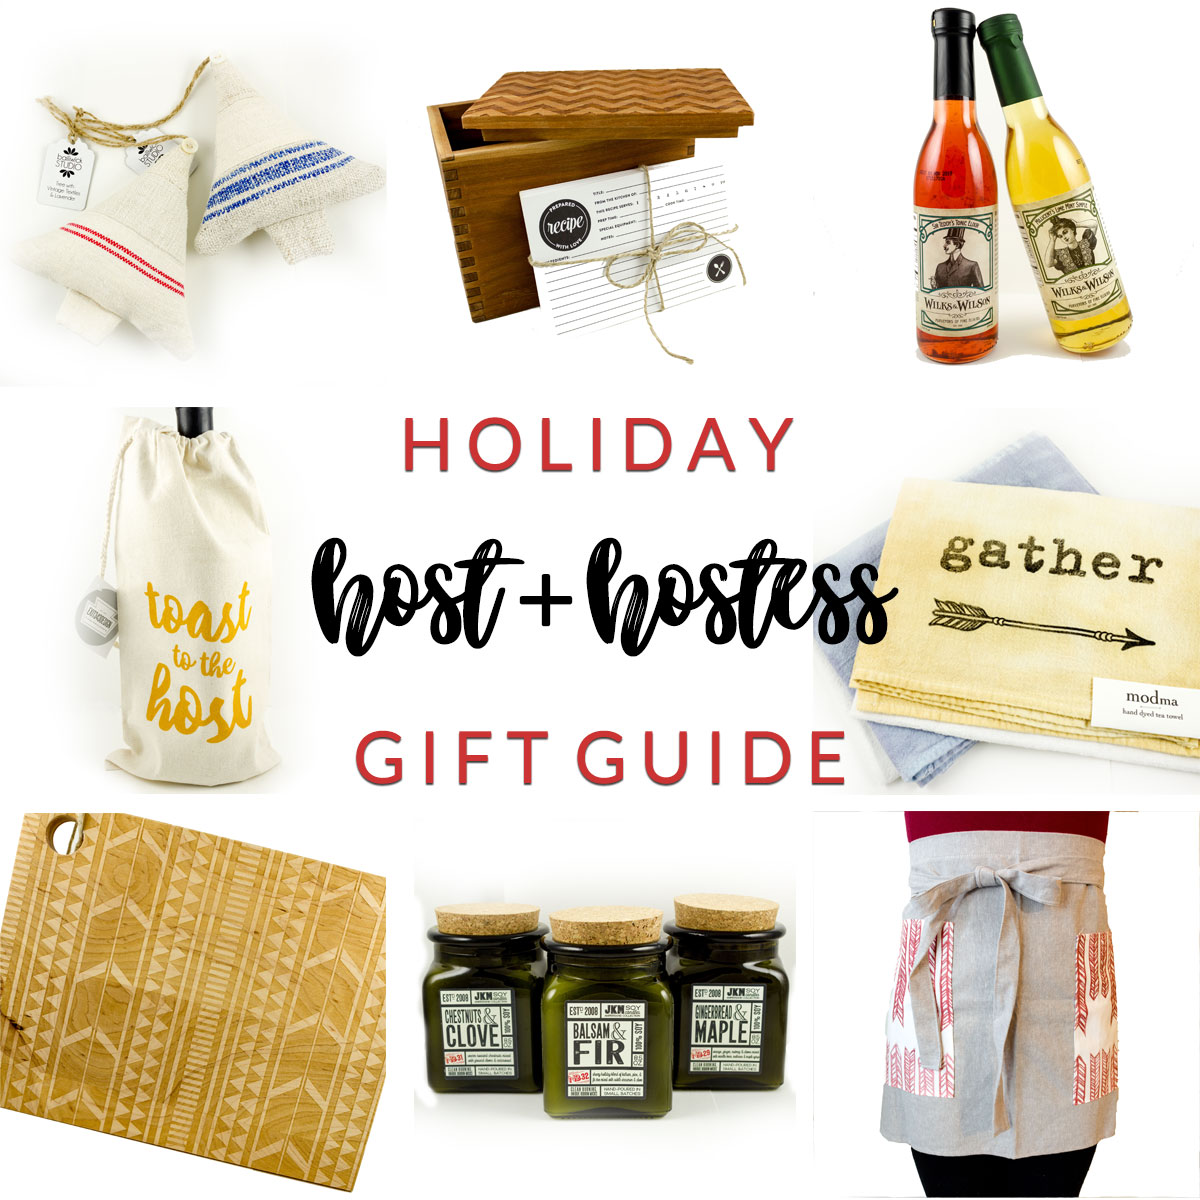 Host Hostess Holiday Gift Guide at Homespun Indianapolis